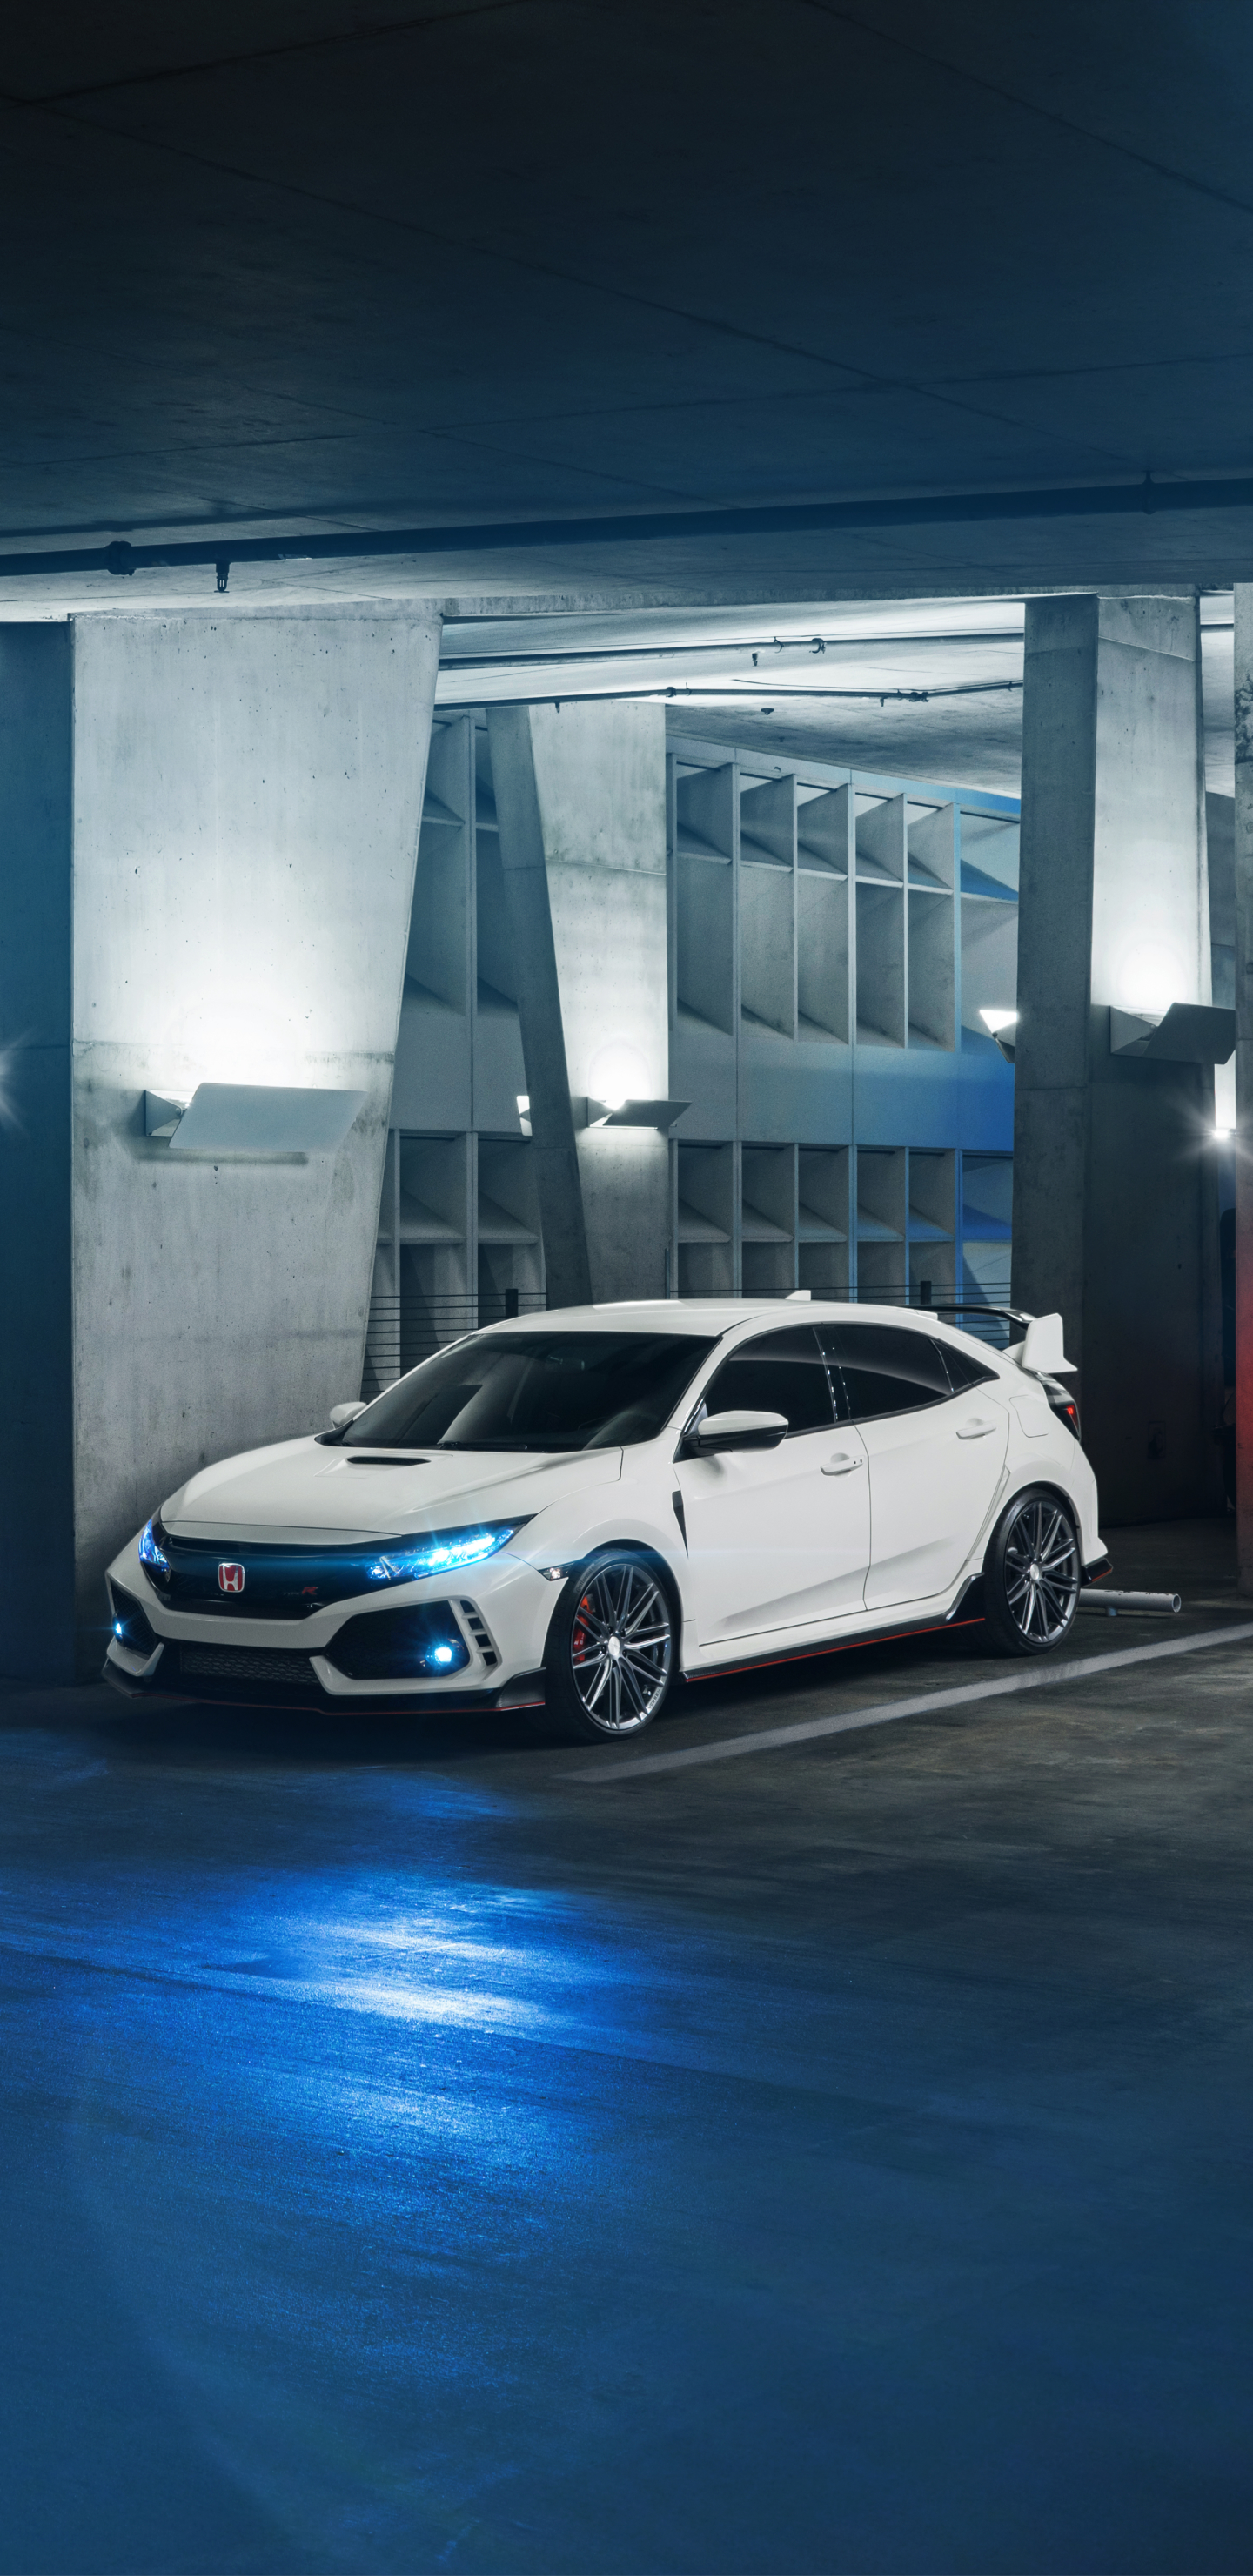 Honda Phone Wallpapers Vehicles Honda Civic Type R 1440x2960 Wallpaper Id 730796